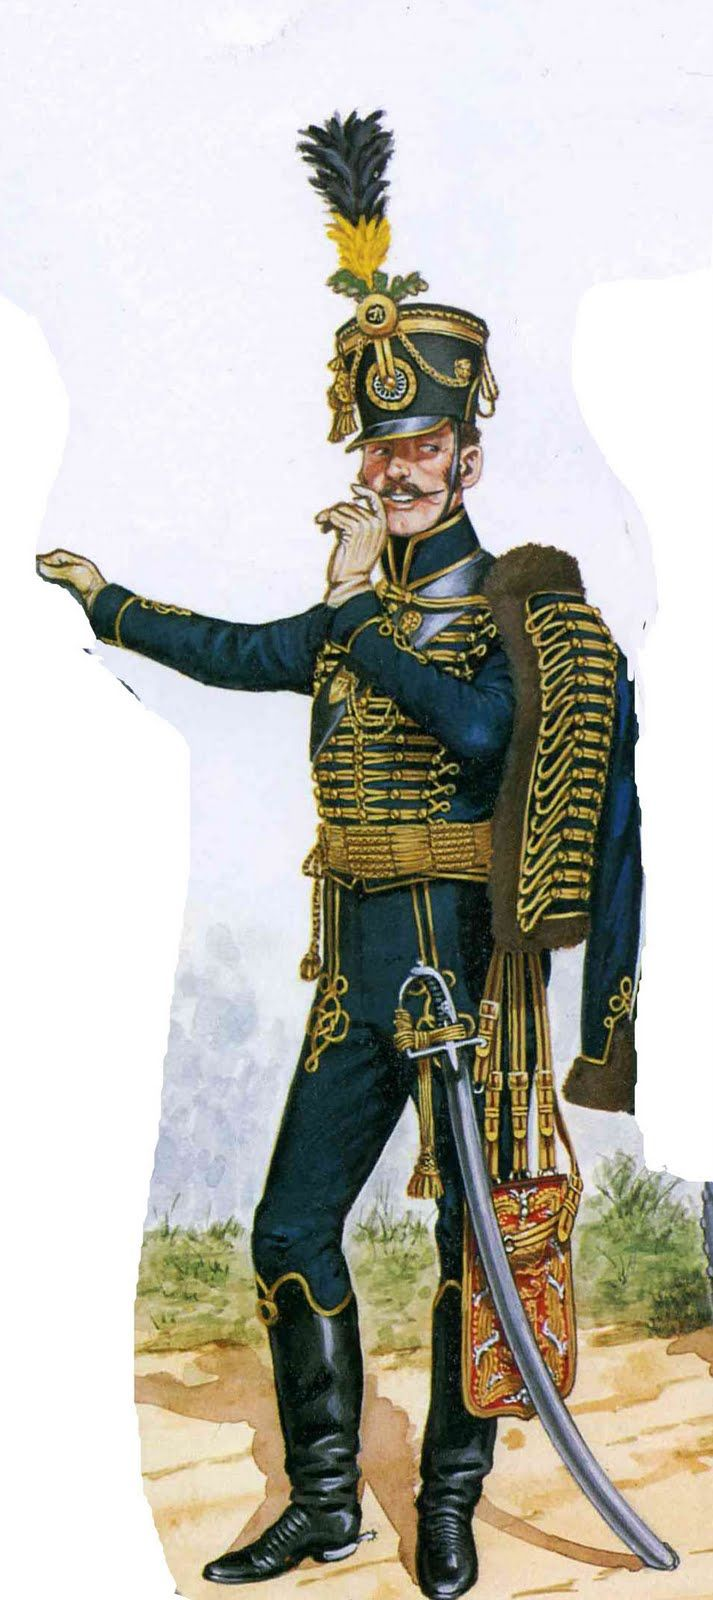 Austrian Hussar Napoleonic Wars  Also inspiration for Raoul's masquerade costume in Phantom of the Opera.